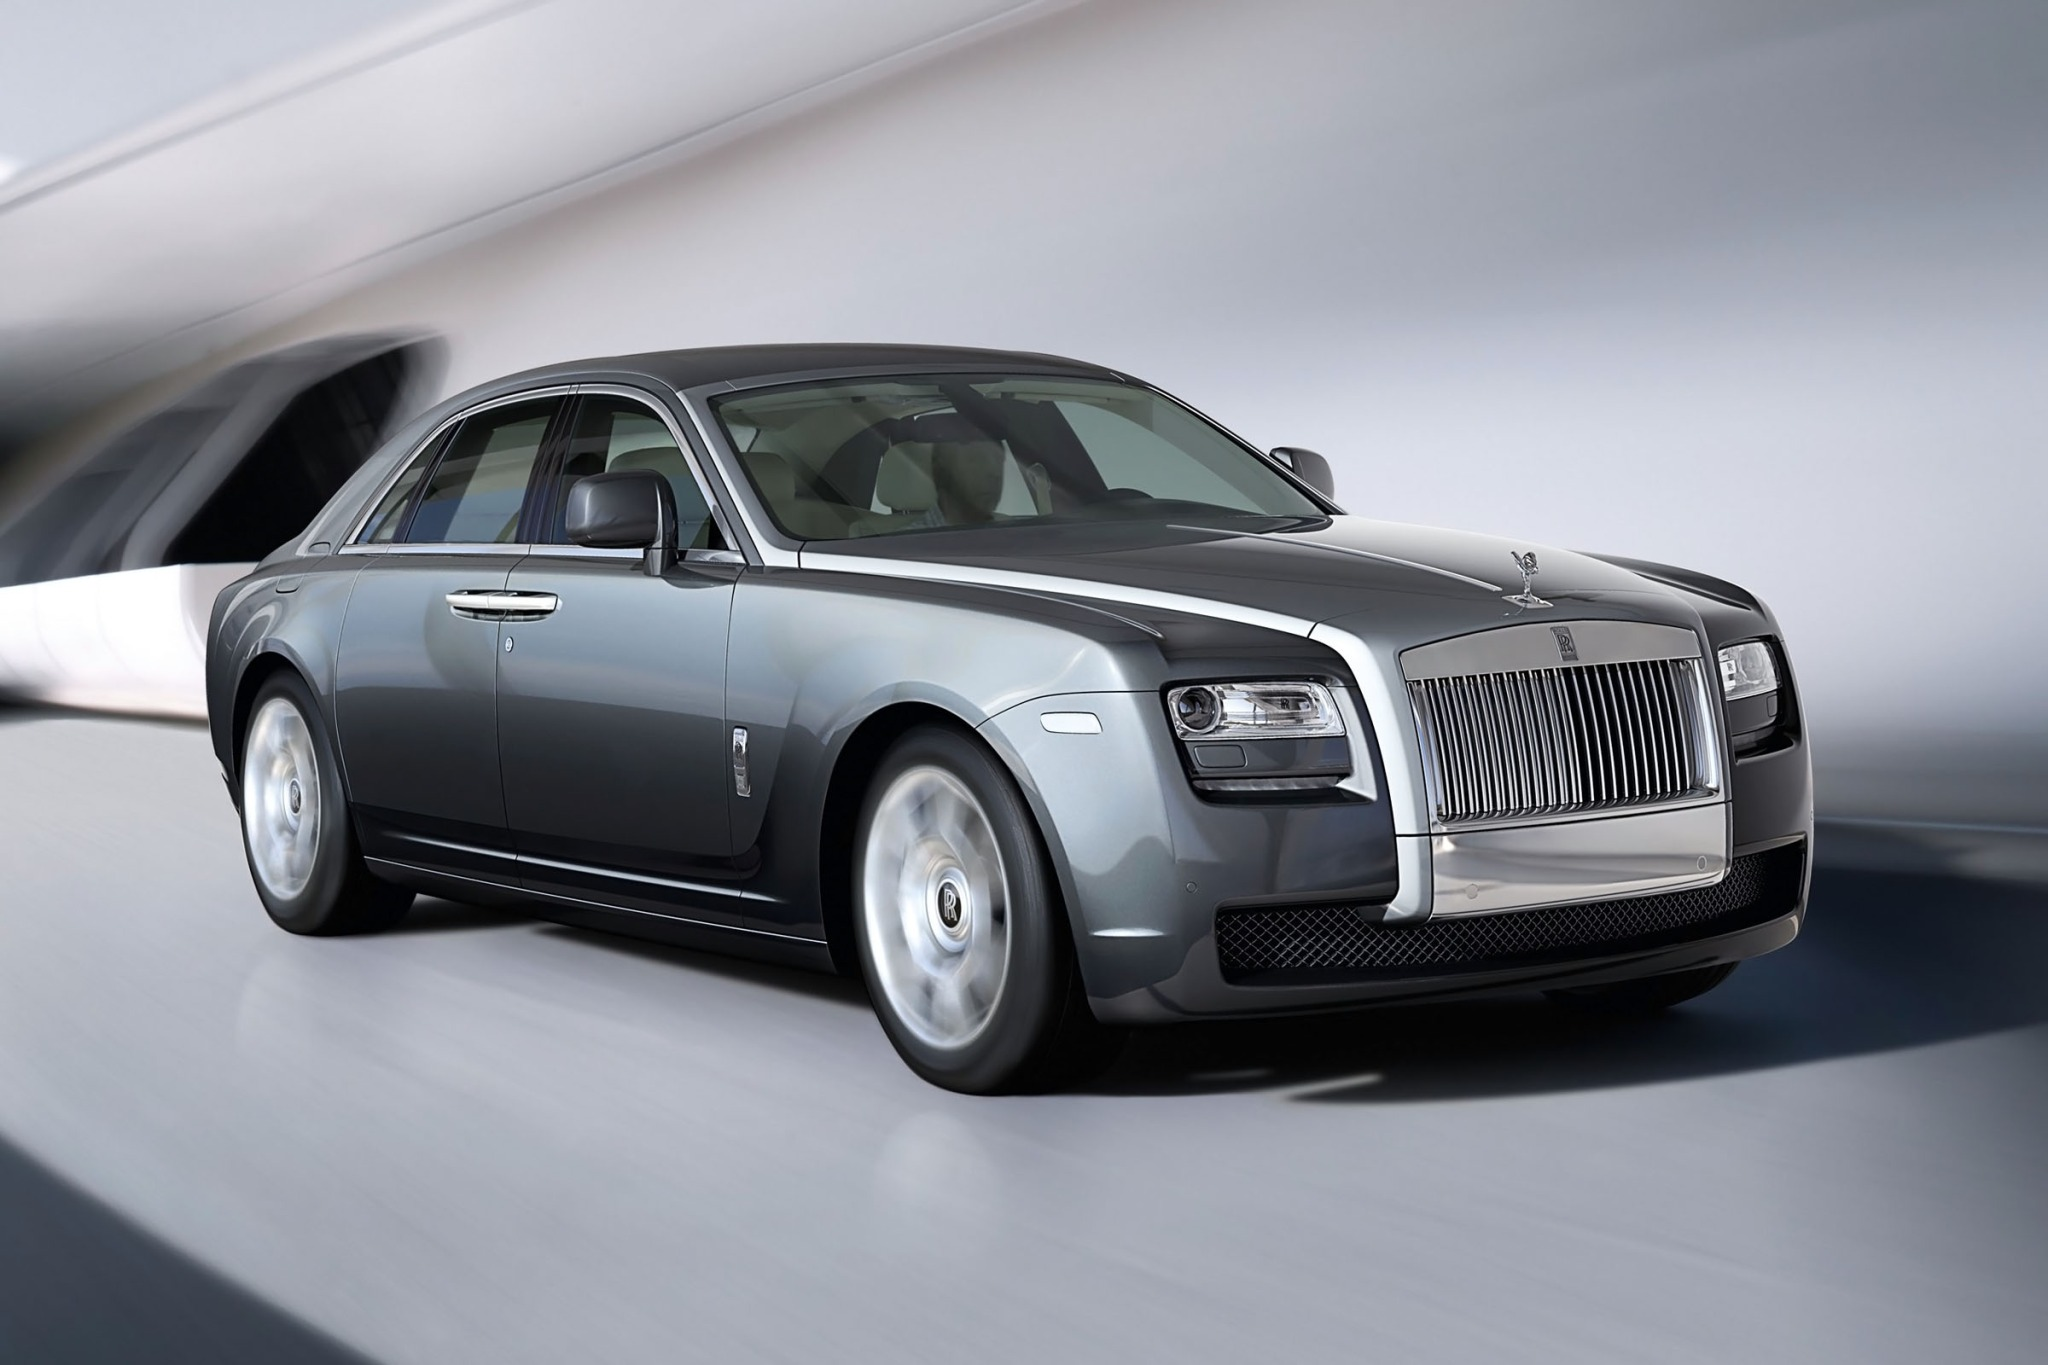 2012 Rolls-Royce Ghost EW interior #5